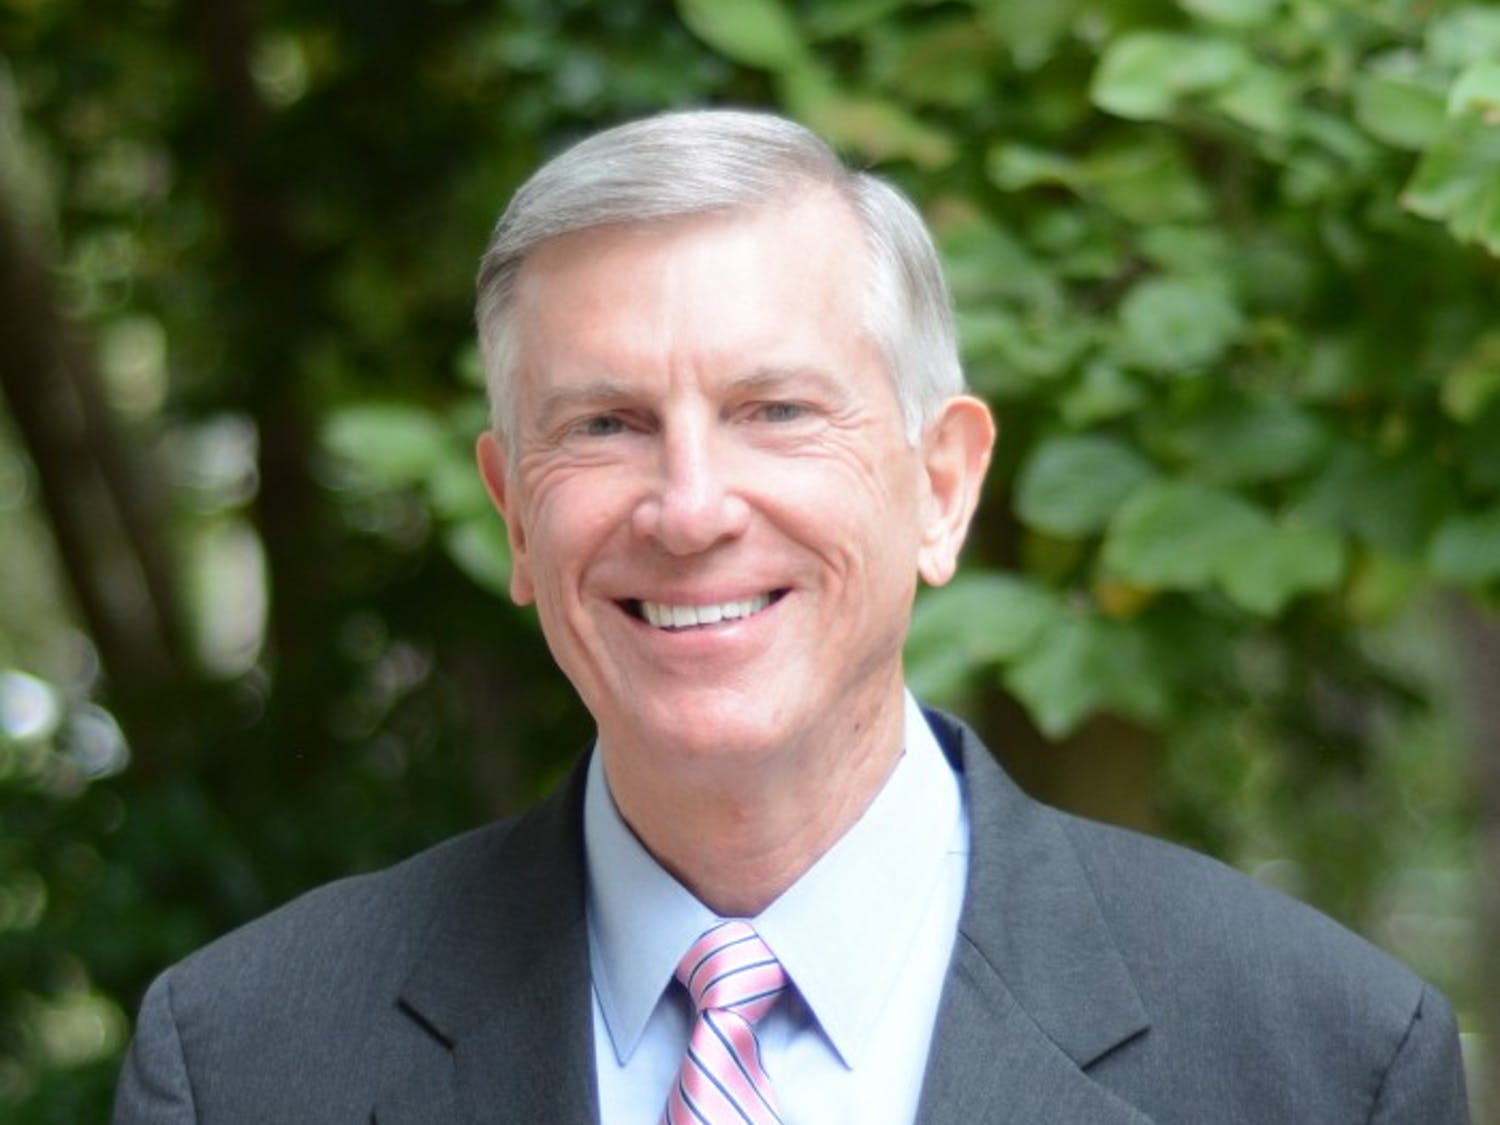 Tom Ross, President of the UNC system.